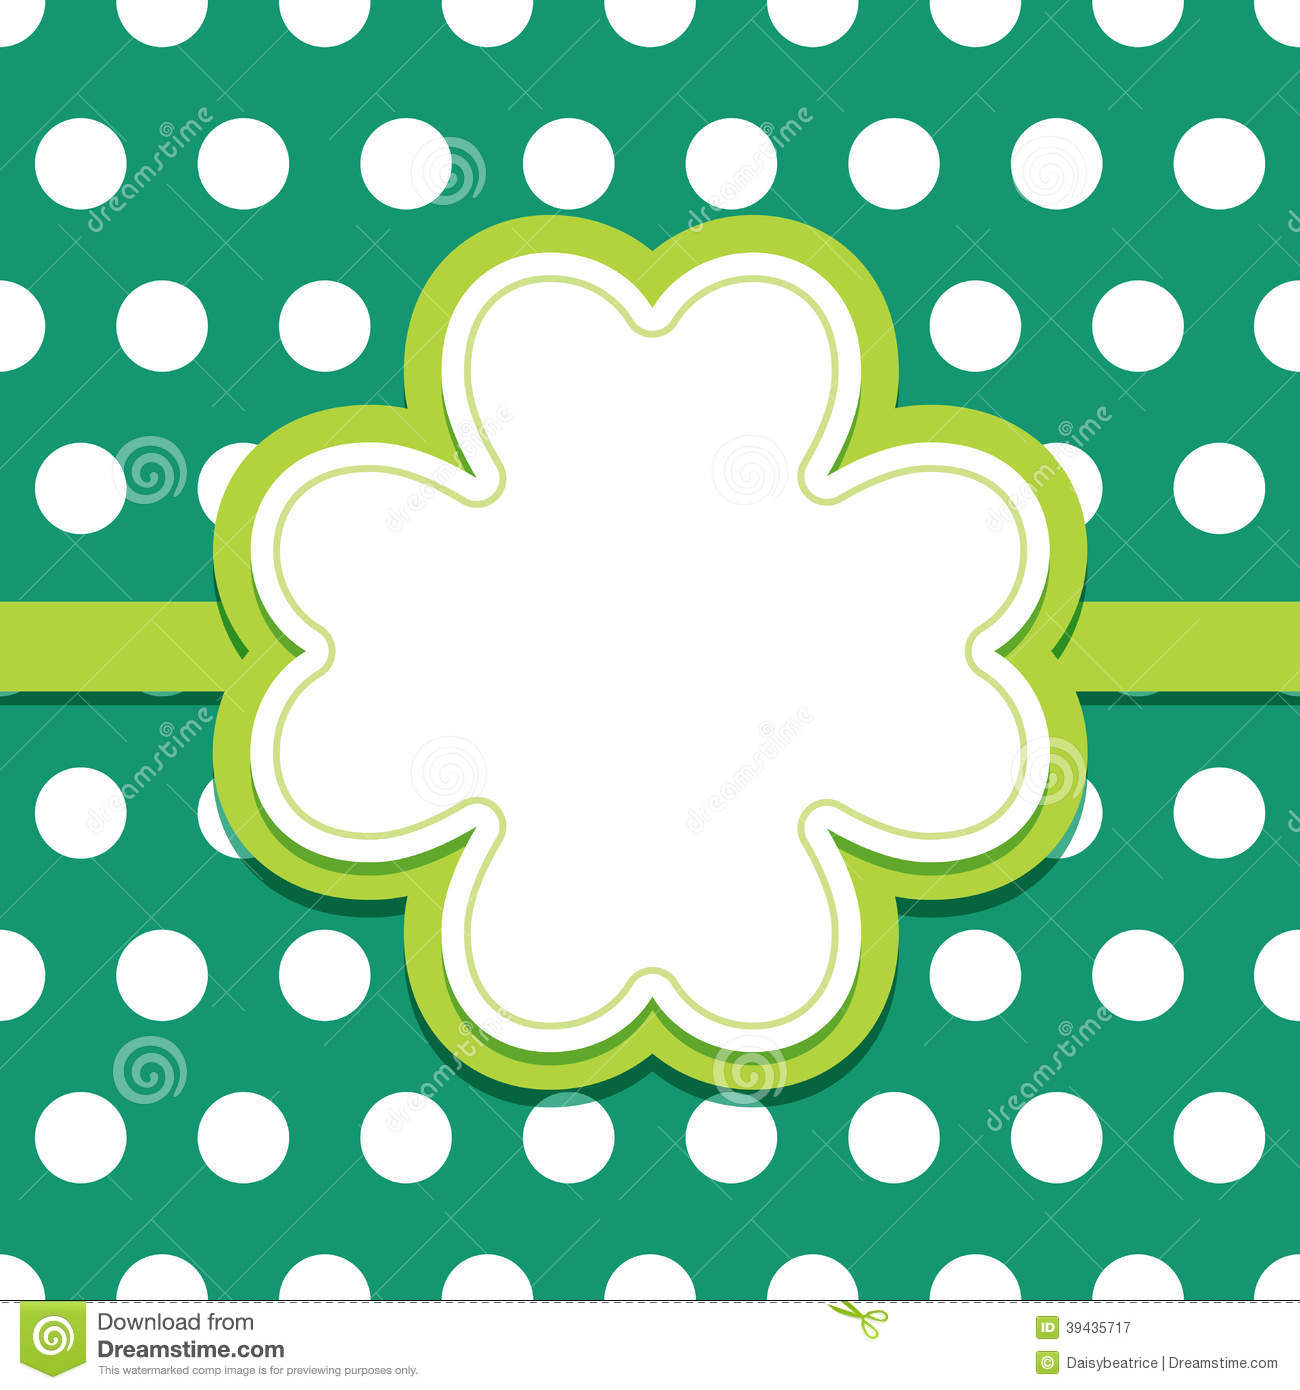 Comfortable 1 Inch Circle Template Small 1 Round Label Template Solid 1.5 Inch Hexagon Template 10 Off Coupon Template Youthful 12 Team Schedule Template Orange15 Year Old Resume Template St Patricks Day Card With 4 Leaf Clover Text Frame Stock Vector ..